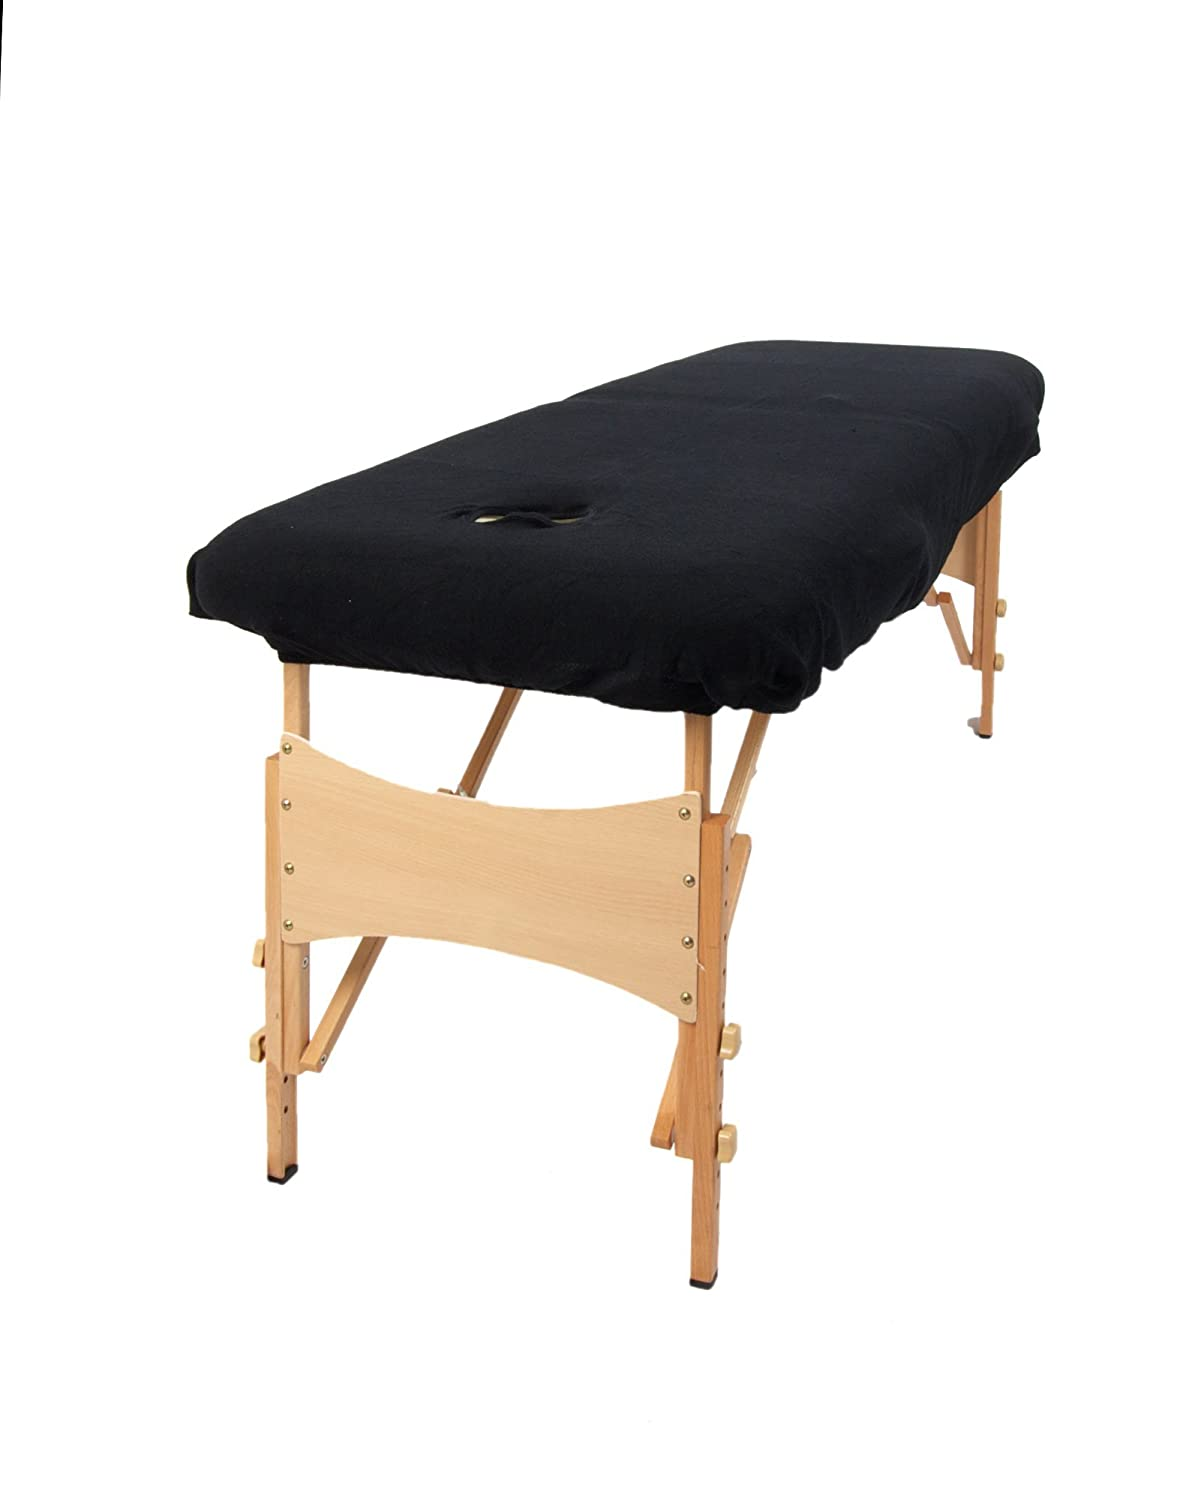 black product rehabzone lightweight massage bed portable